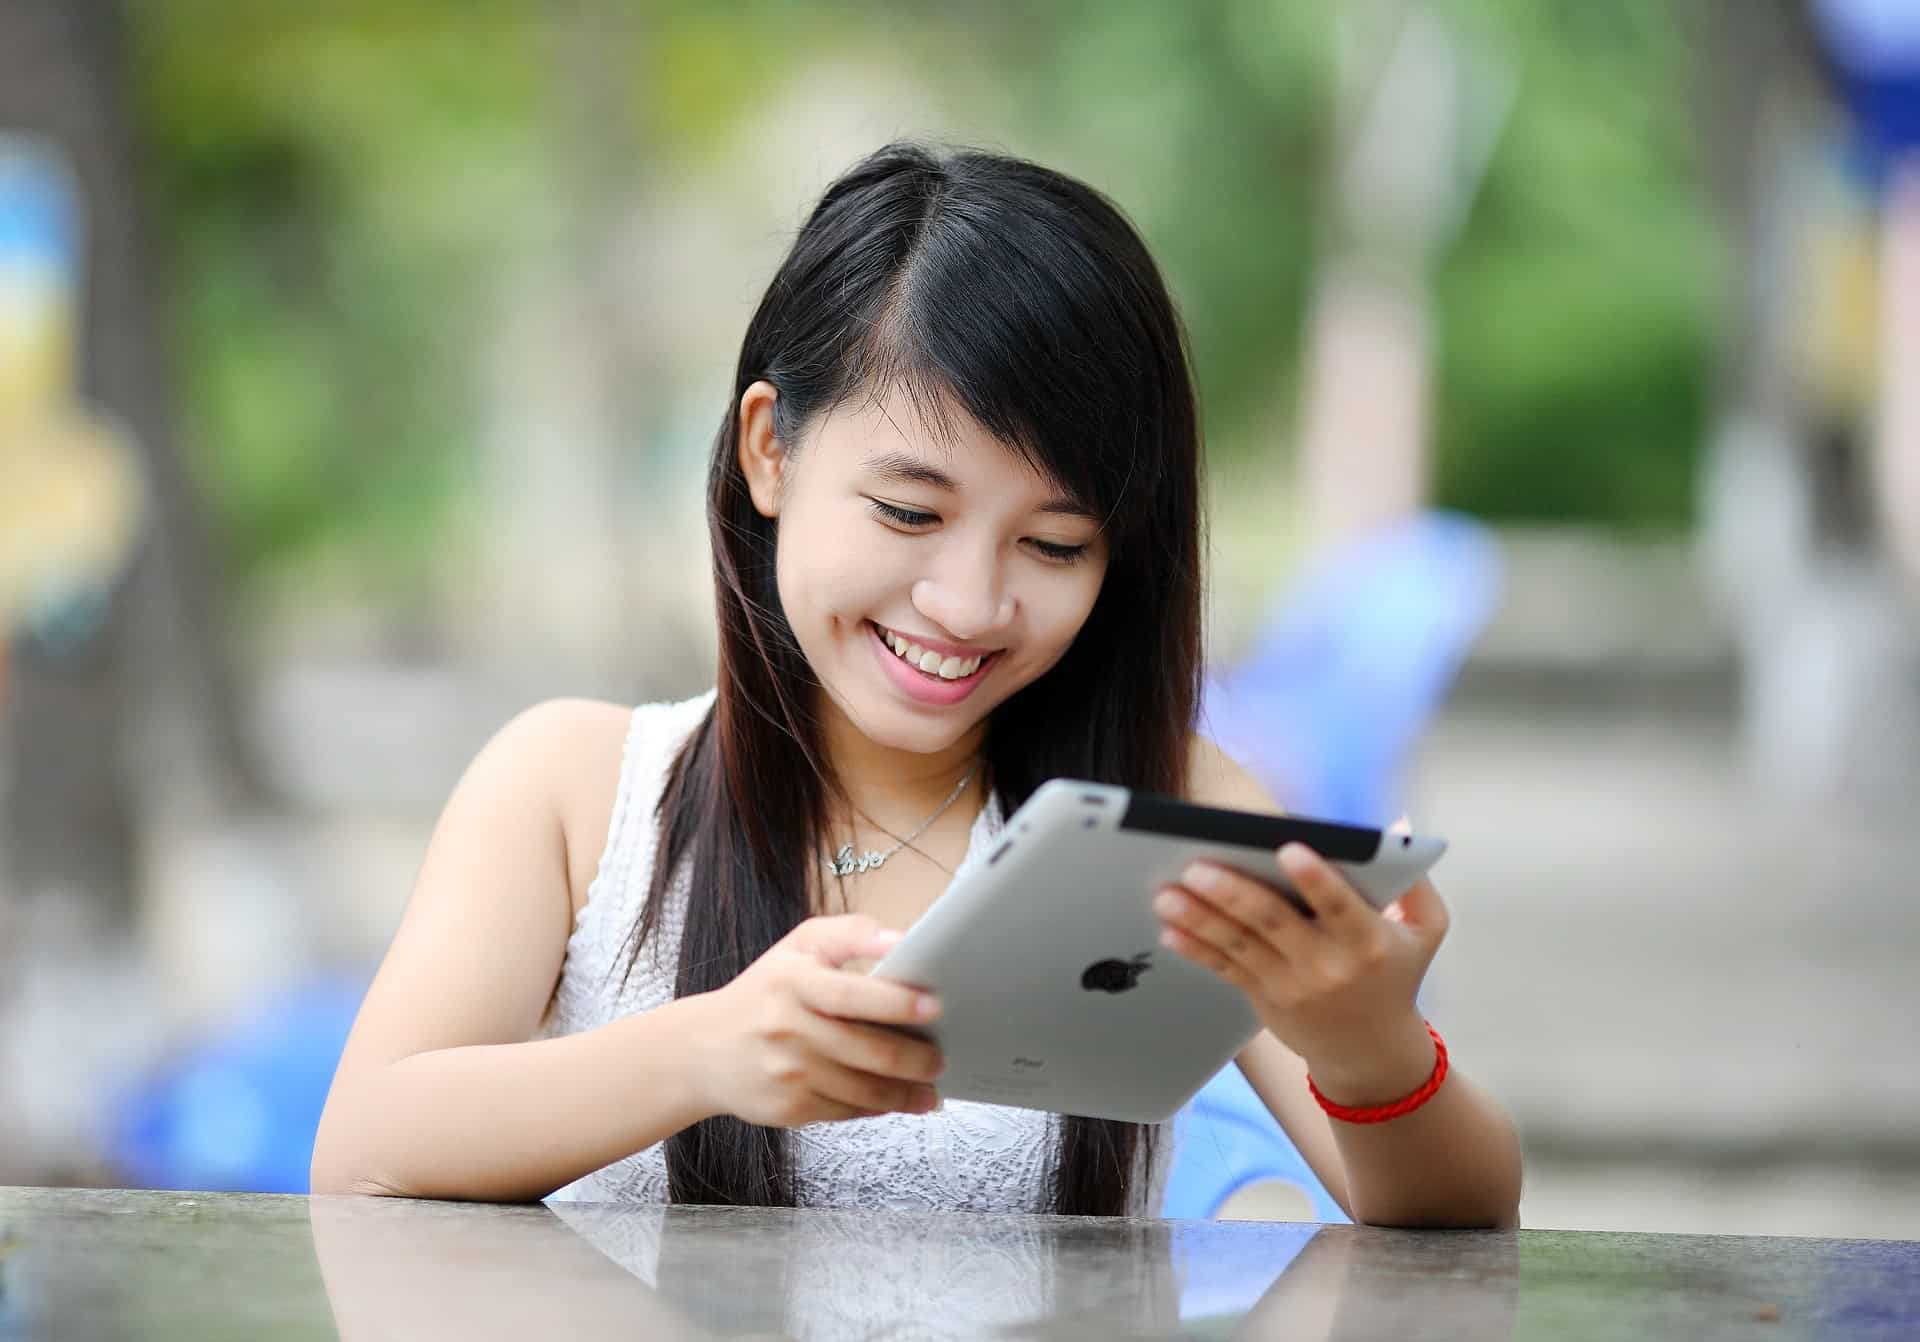 A girl who smile happily, is playing with her ipad.